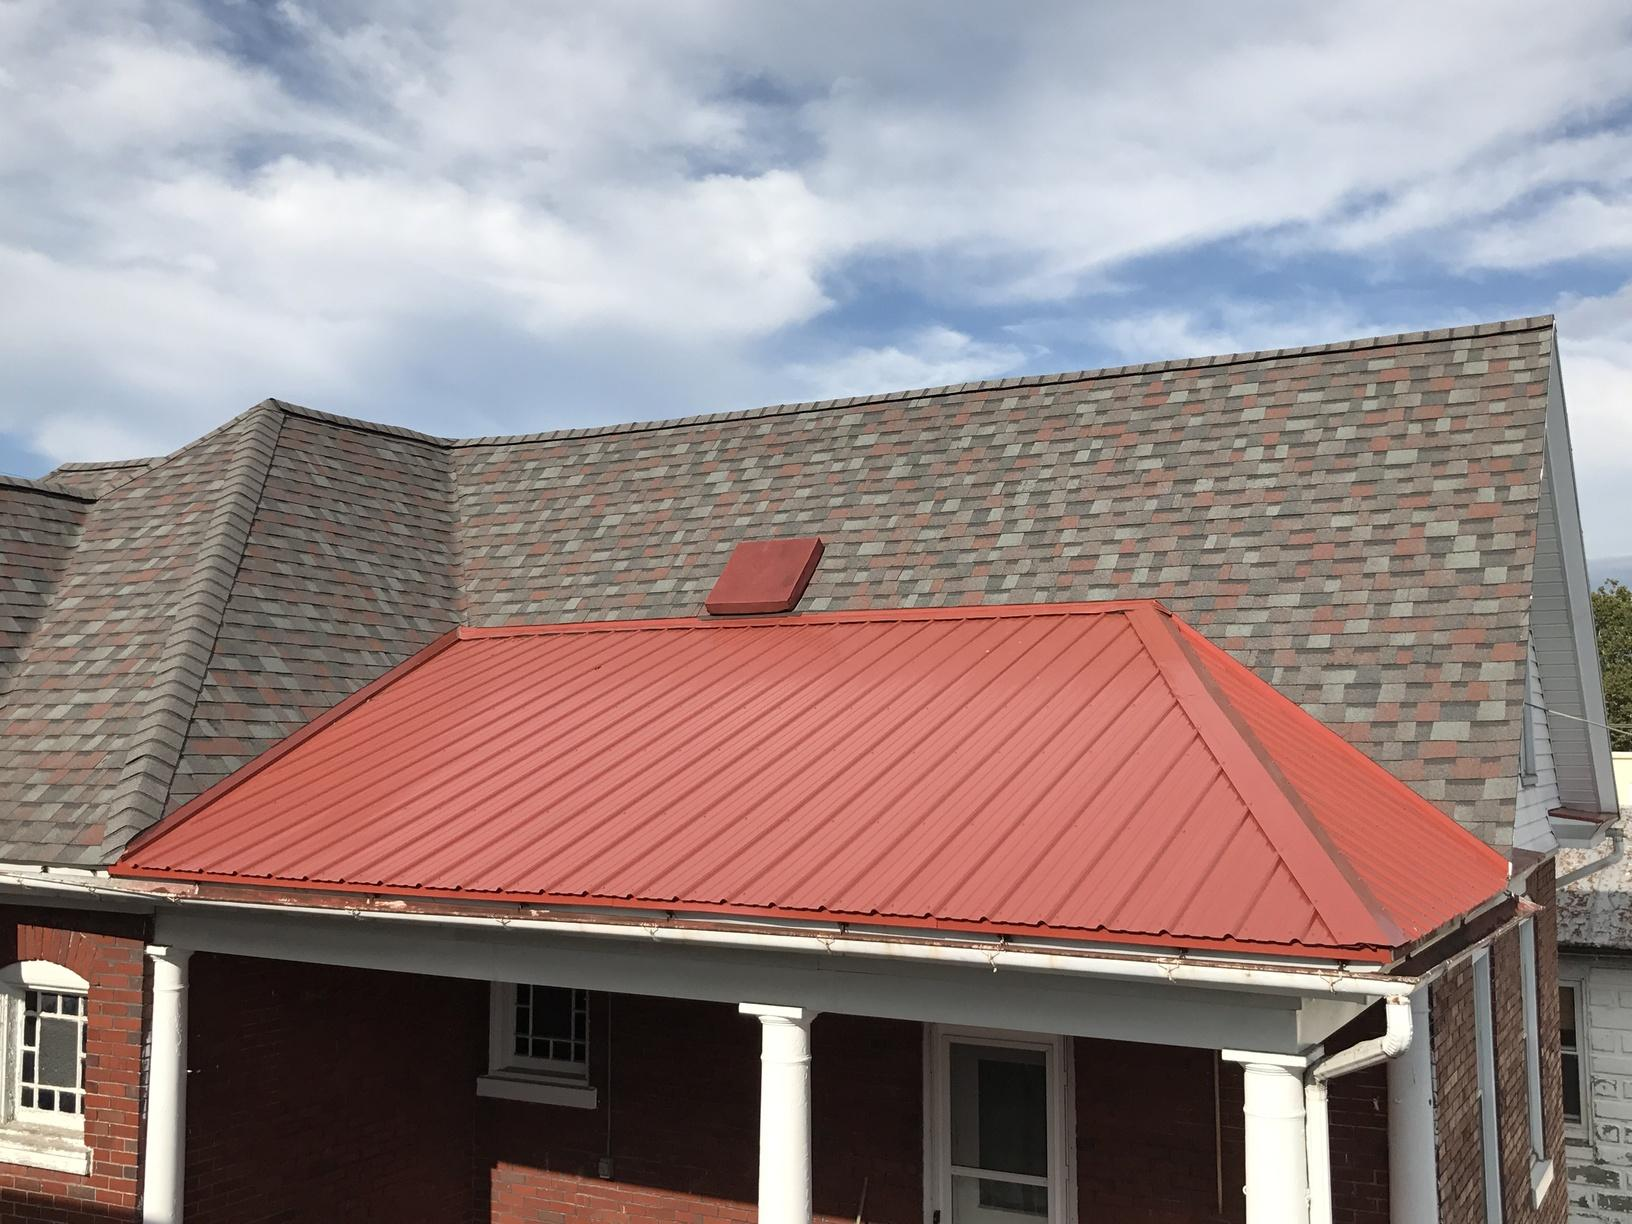 Storm Damage Roof Replacement in Richland, PA